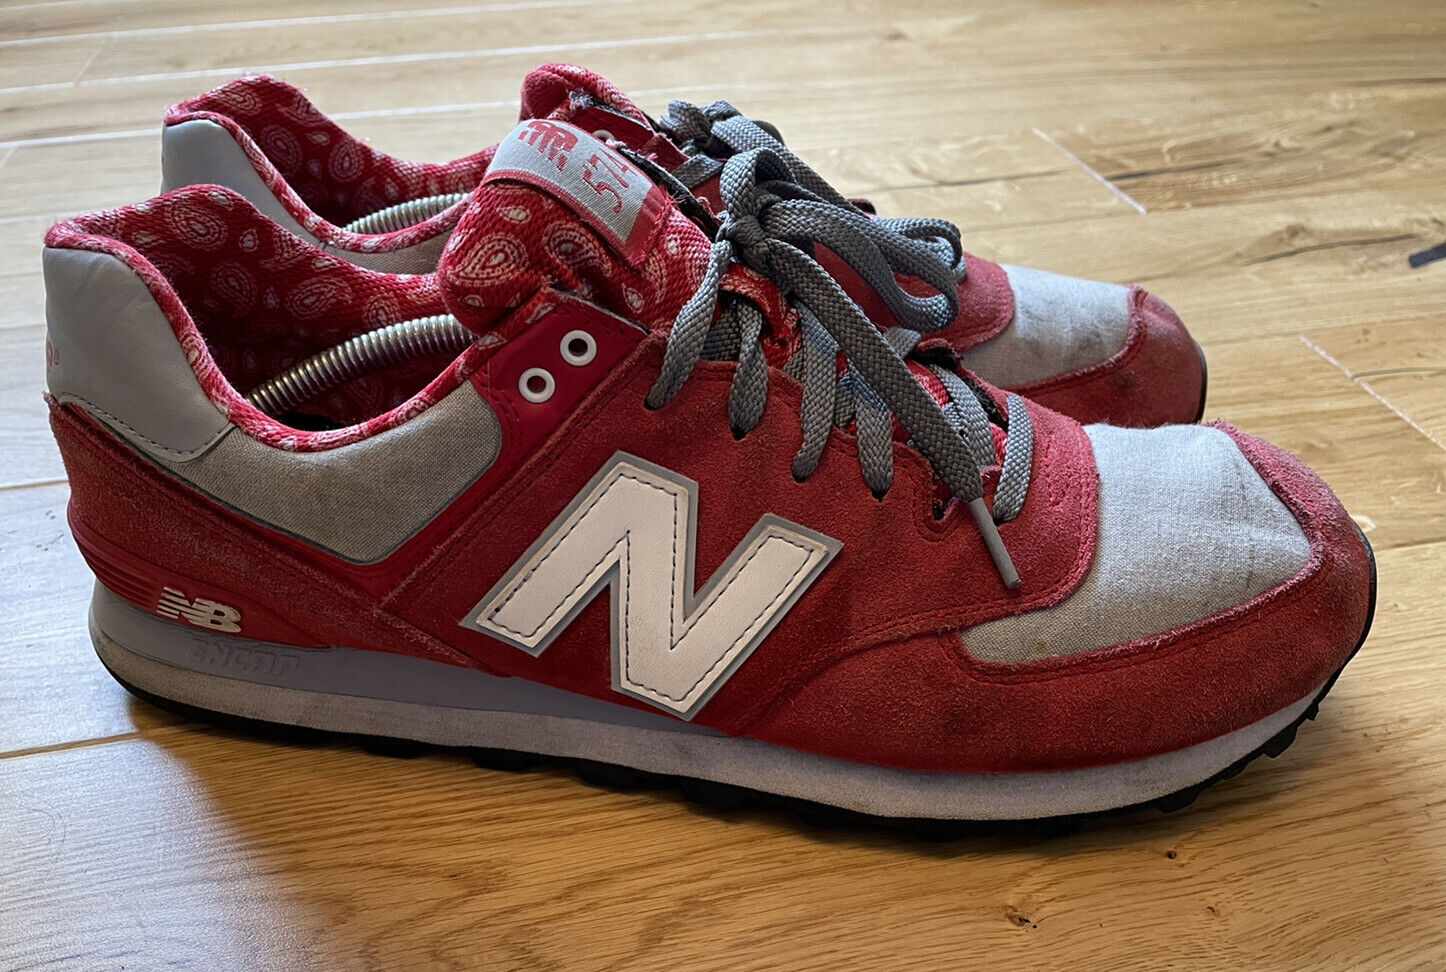 New Balance 574 Mens Size Uk 11.5 ML574LCM Red Gray Suede Paisley RARE